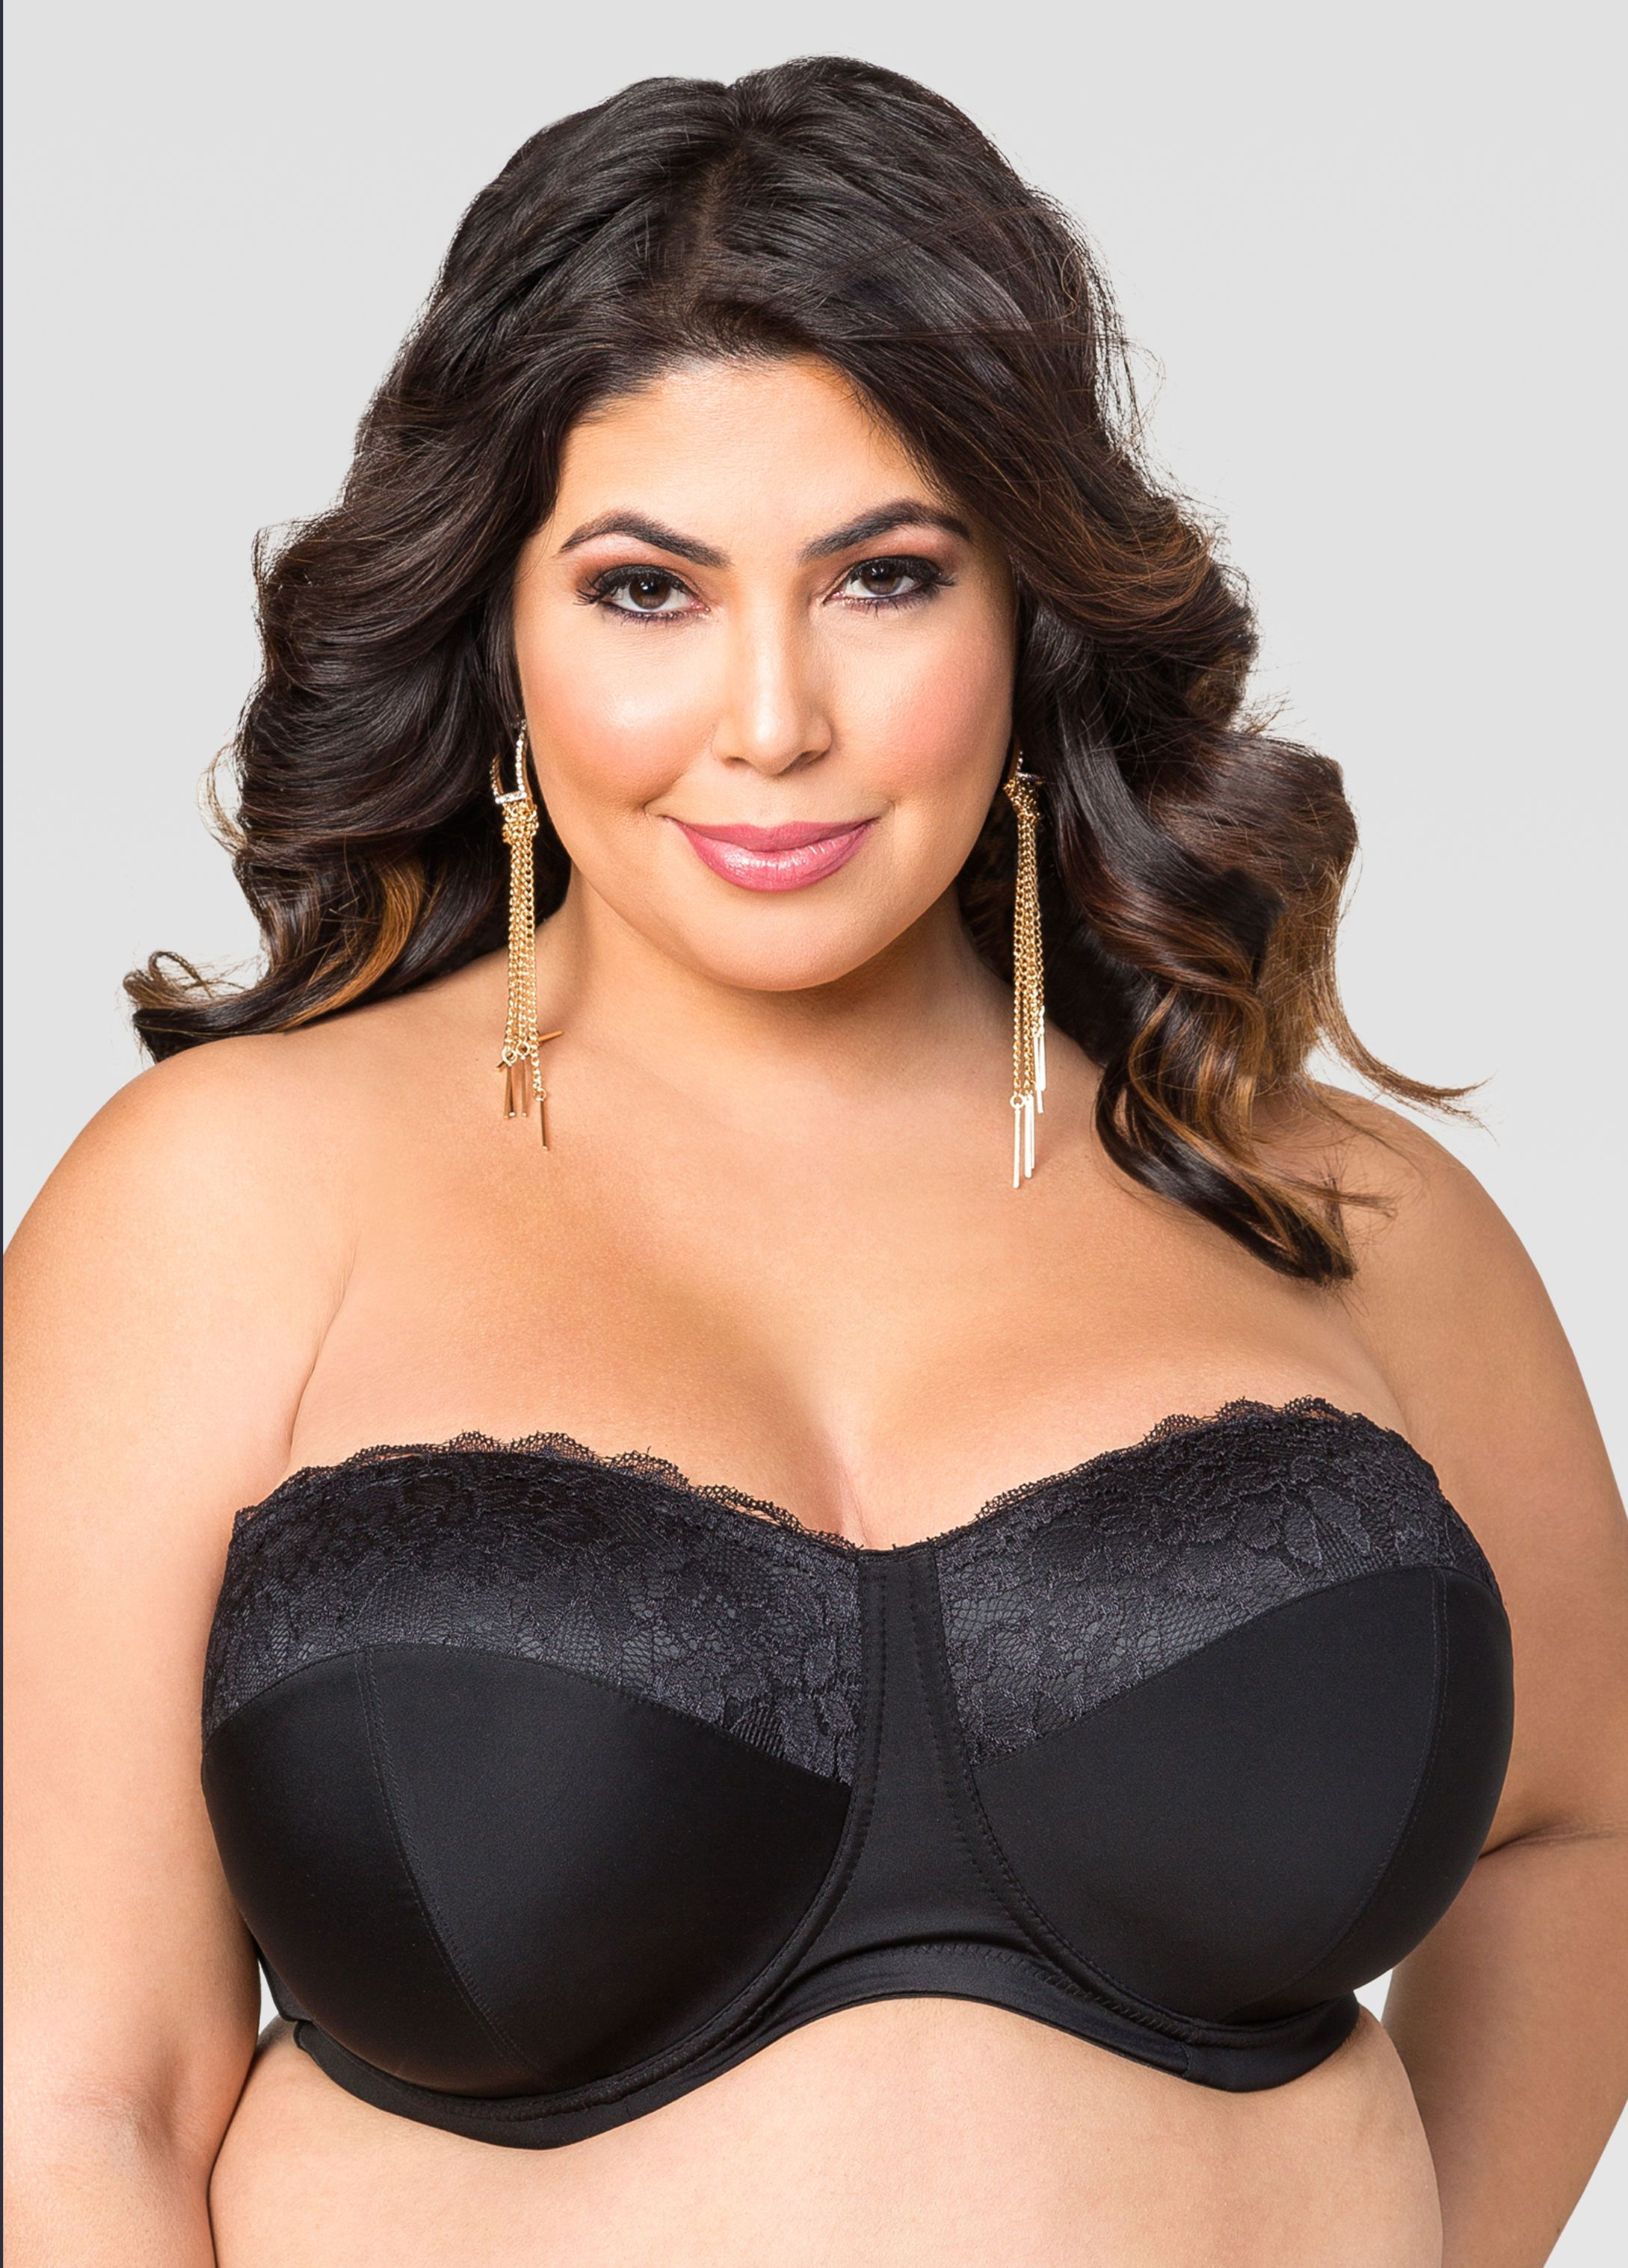 eb2492907ed .....I took a chance and bought this online. So far I m very happy with  this bra! I ve always had trouble finding a supportive strapless bra